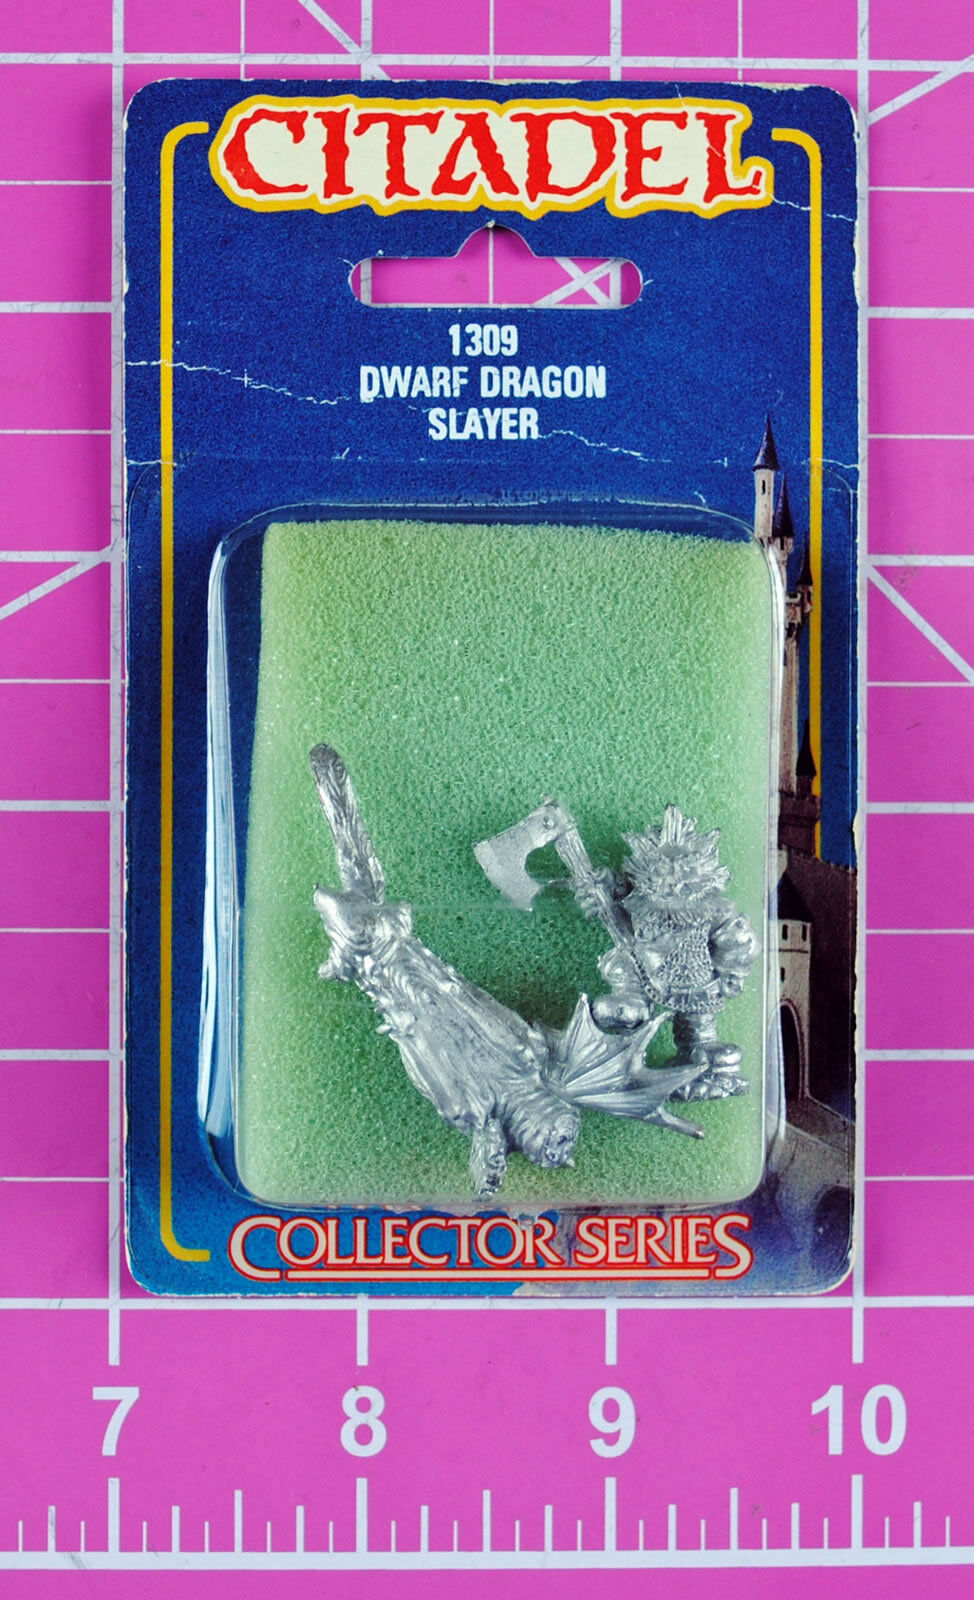 Warhammer Dwarf Dragon Slayer & Severed Head NIB - Rare & OOP - Citadel Dwarfs